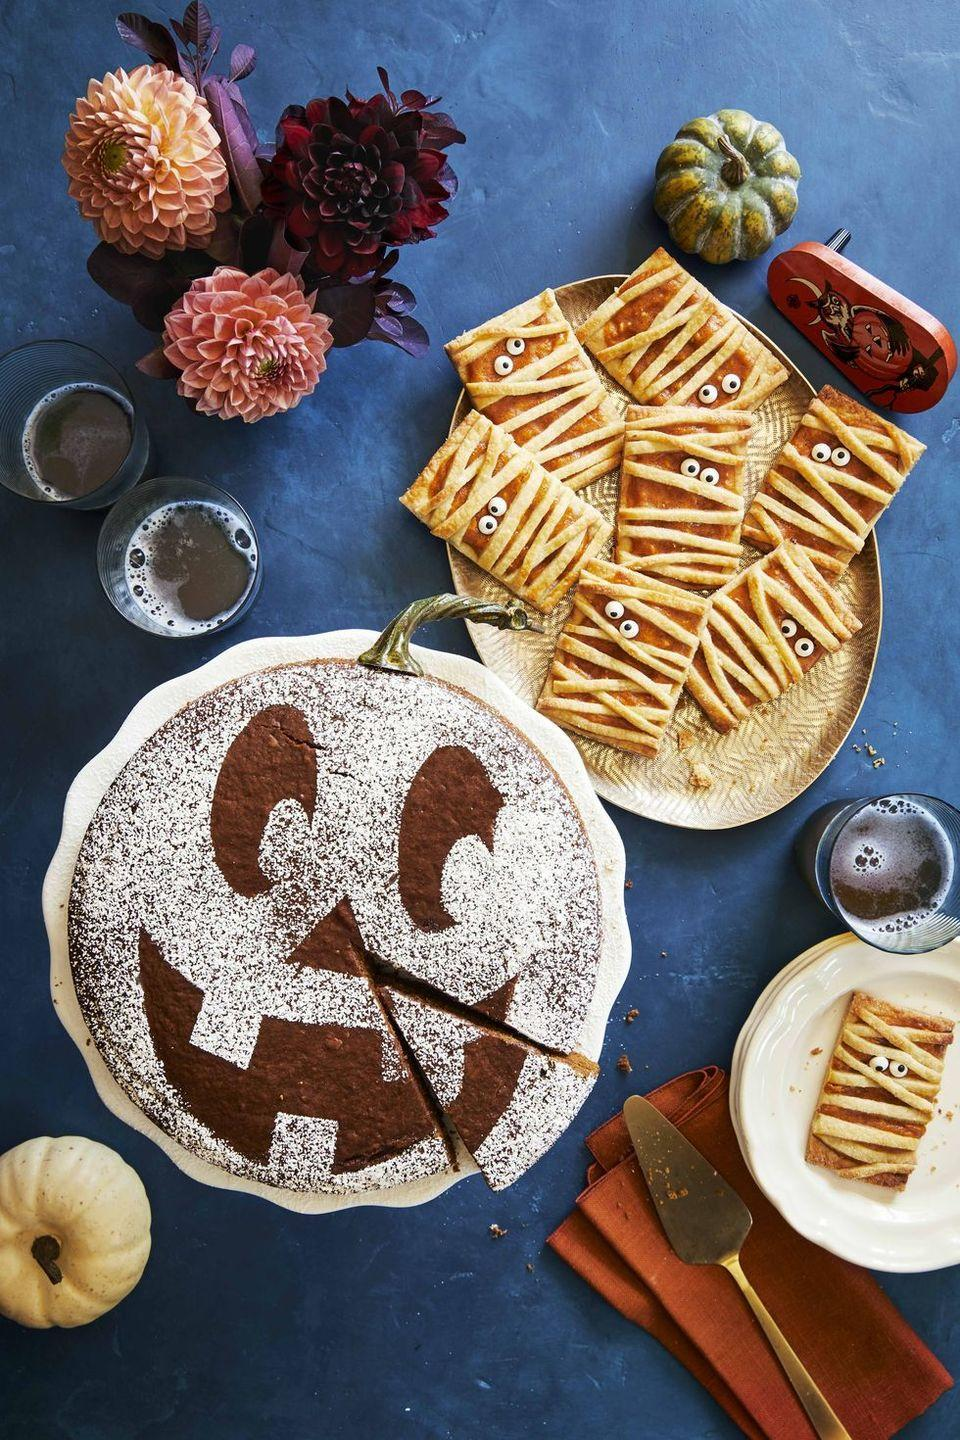 """<p>For a simple sweet, bake a richly spiced pumpkin cake, then use a jack-o'-lantern stencil to decorate with confectioners' sugar.</p><p><em><a href=""""https://www.countryliving.com/food-drinks/a33944277/spiced-pumpkin-molasses-cake/"""" rel=""""nofollow noopener"""" target=""""_blank"""" data-ylk=""""slk:Get the recipe from Country Living »"""" class=""""link rapid-noclick-resp"""">Get the recipe from Country Living »</a></em></p><p><strong>RELATED: </strong><a href=""""https://www.goodhousekeeping.com/food-recipes/dessert/g4547/pumpkin-cake-recipes/"""" rel=""""nofollow noopener"""" target=""""_blank"""" data-ylk=""""slk:21 Pumpkin Cakes That Celebrate Fall in the Best Way"""" class=""""link rapid-noclick-resp"""">21 Pumpkin Cakes That Celebrate Fall in the Best Way</a><br></p>"""